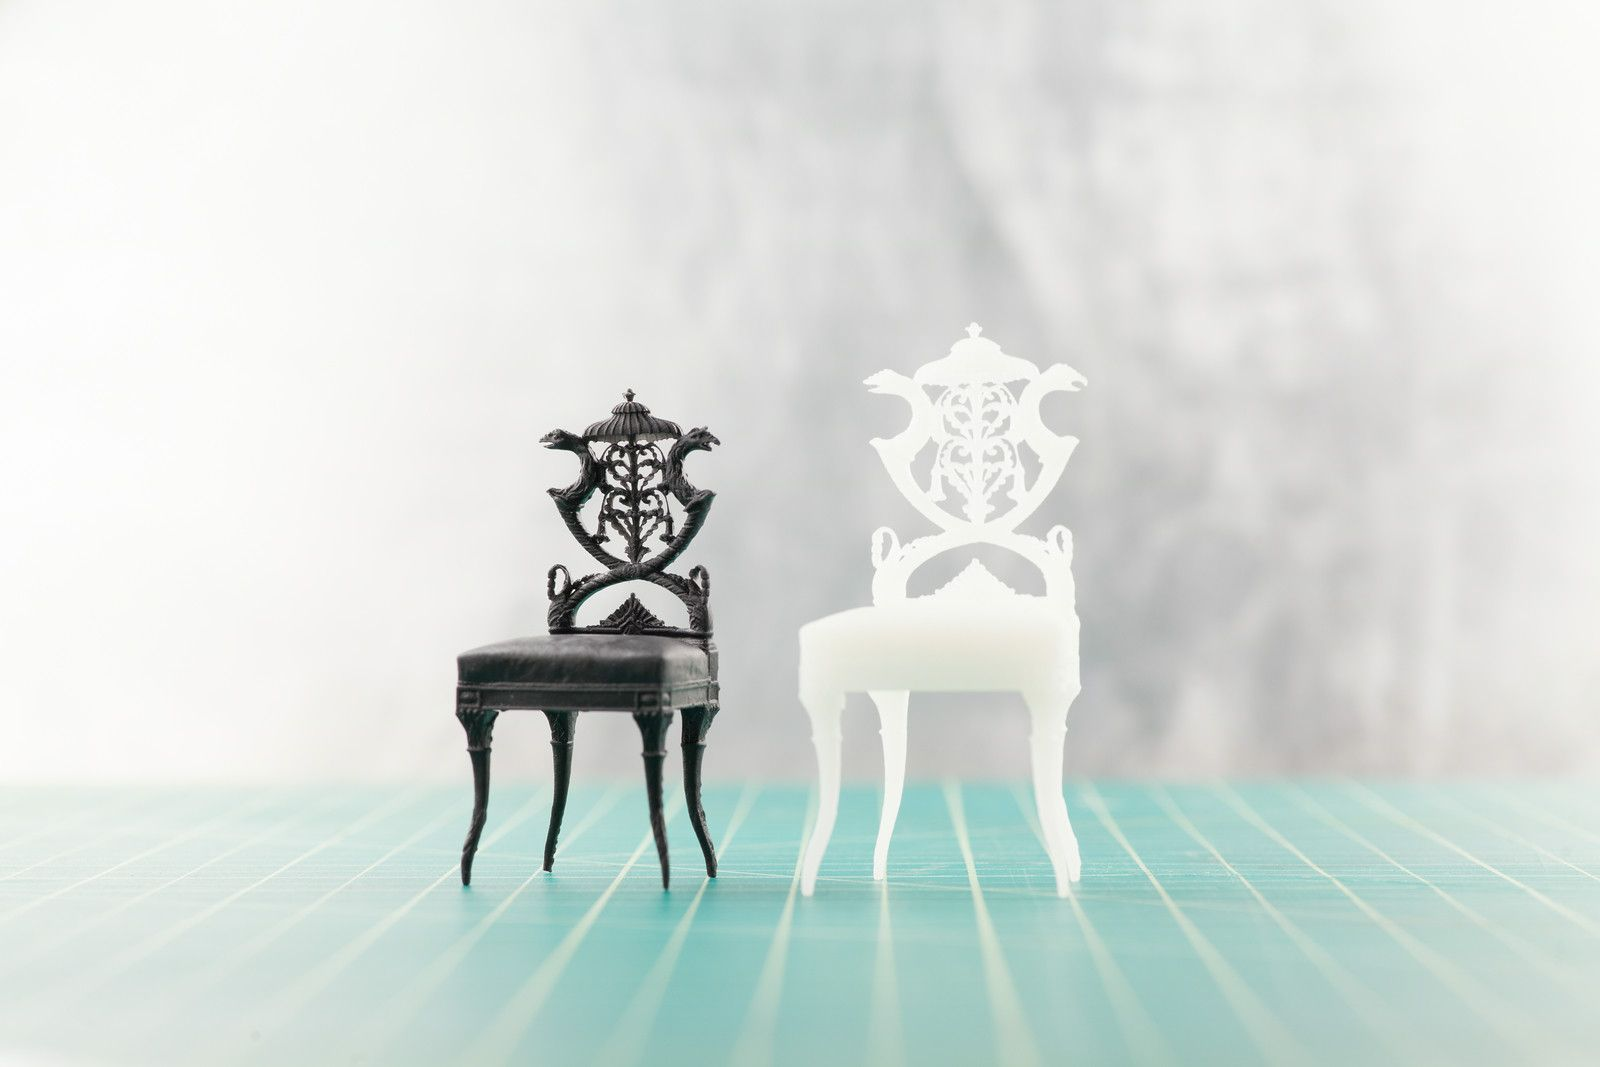 Chair designs provided by the Smithsonian Institution, printed on a Form 1+. #formlabs #3dprinting #design #chair #smithsonian